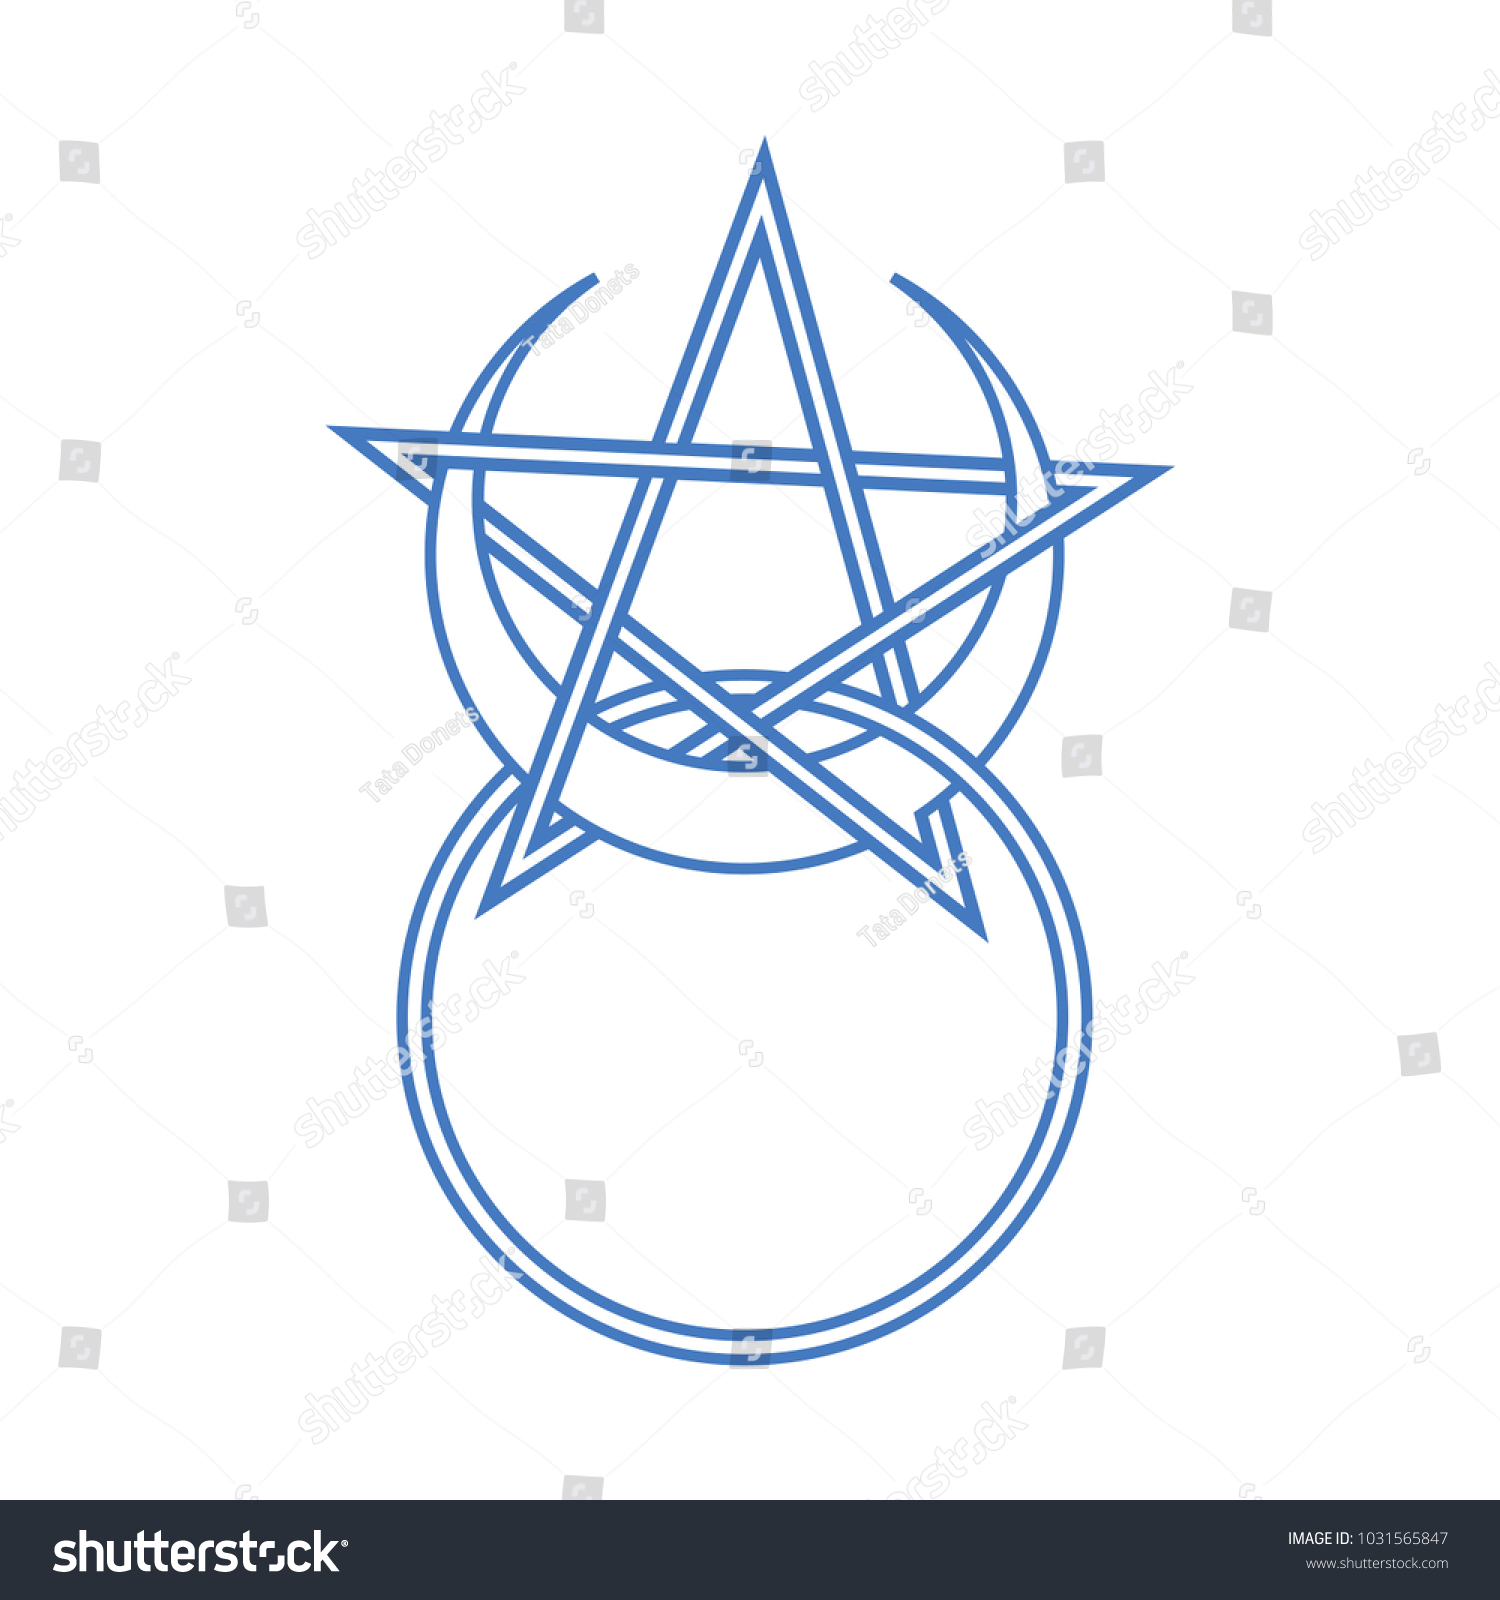 Vector symbol wiccan occult esoteric community stock vector vector symbol for wiccan and occult esoteric community horned god symbol with pentacle could biocorpaavc Choice Image